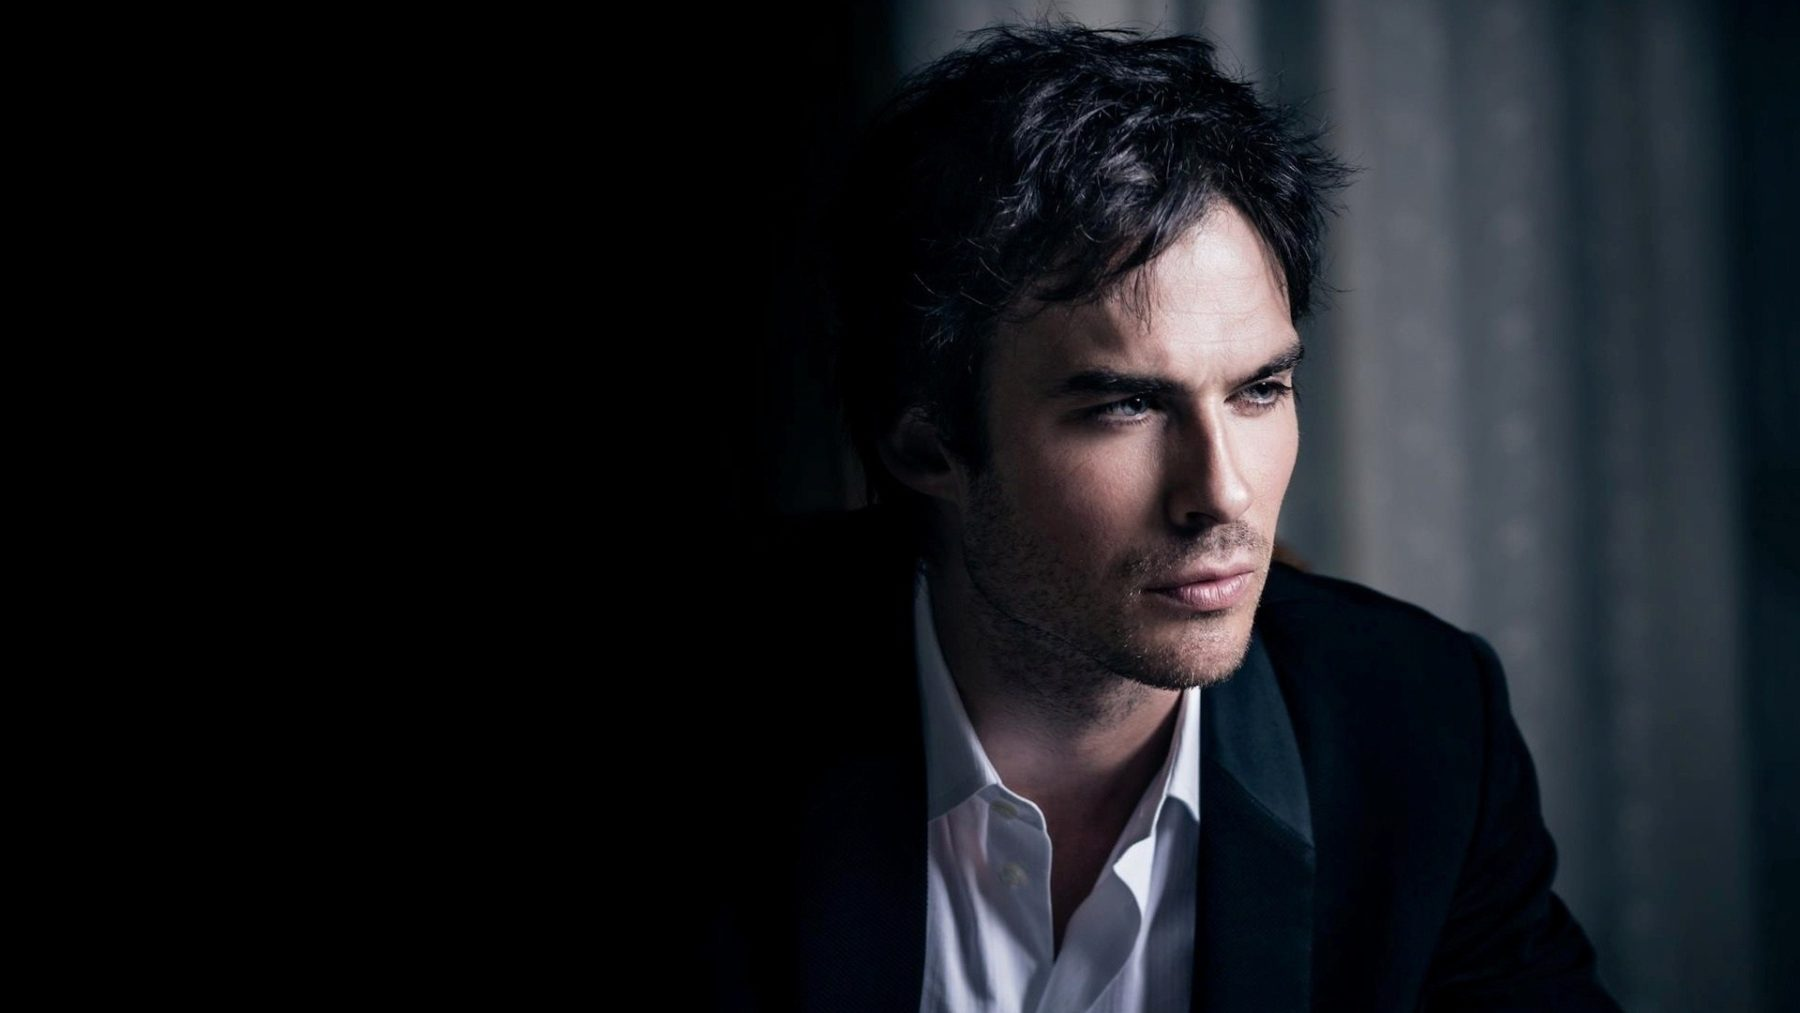 Damon Salvatore - Ian Somerhalder